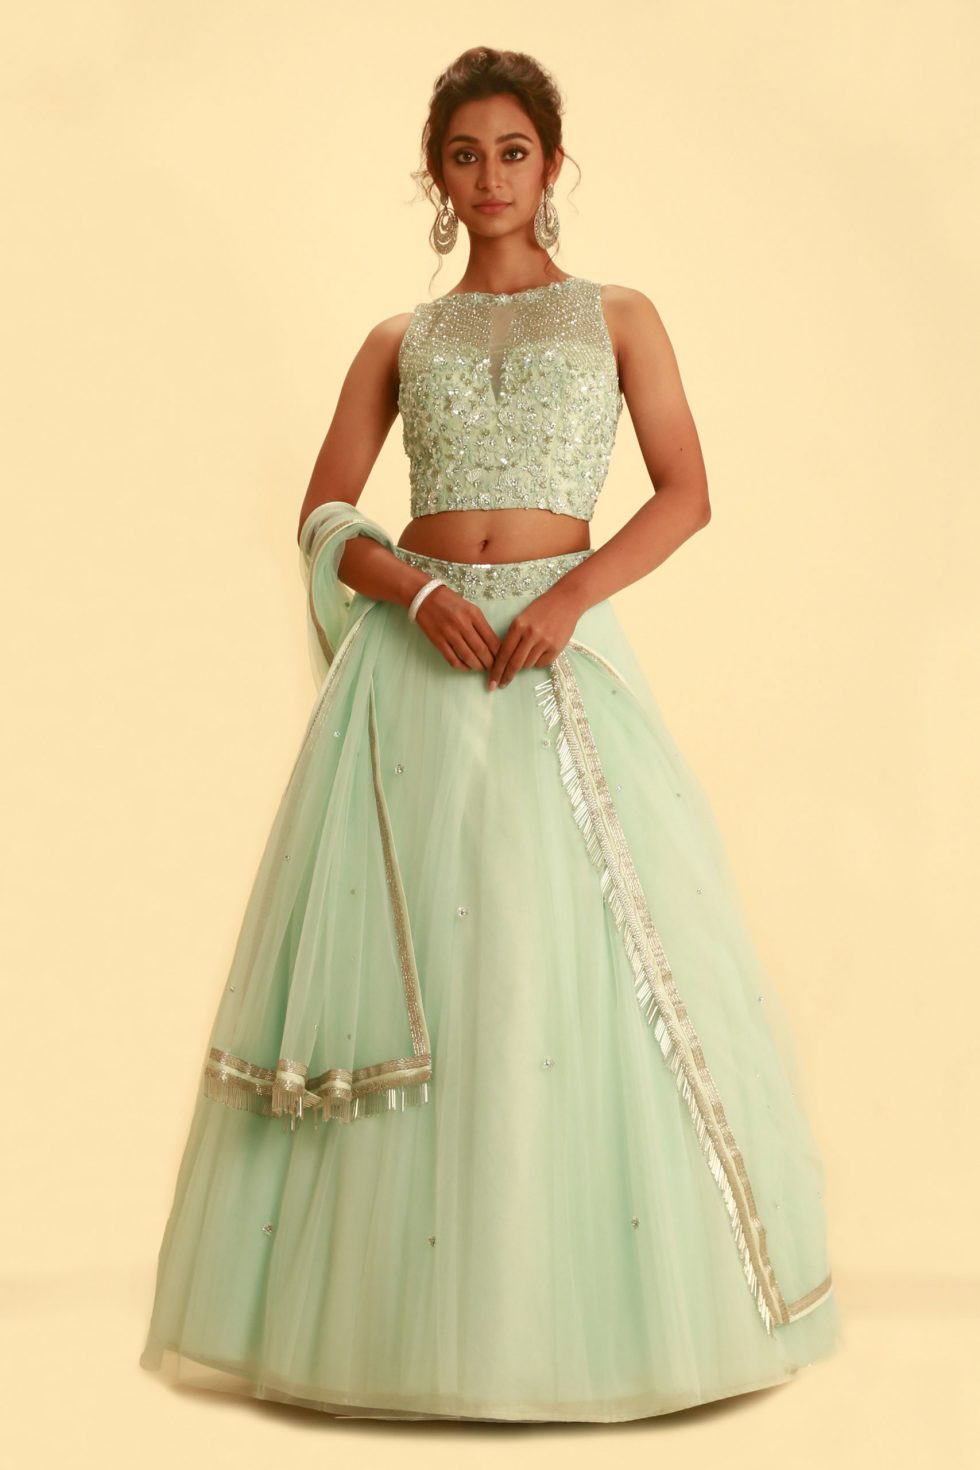 Powder blue tulle lehenga set with zardozi and aari handwork and a matching dupatta with tassels